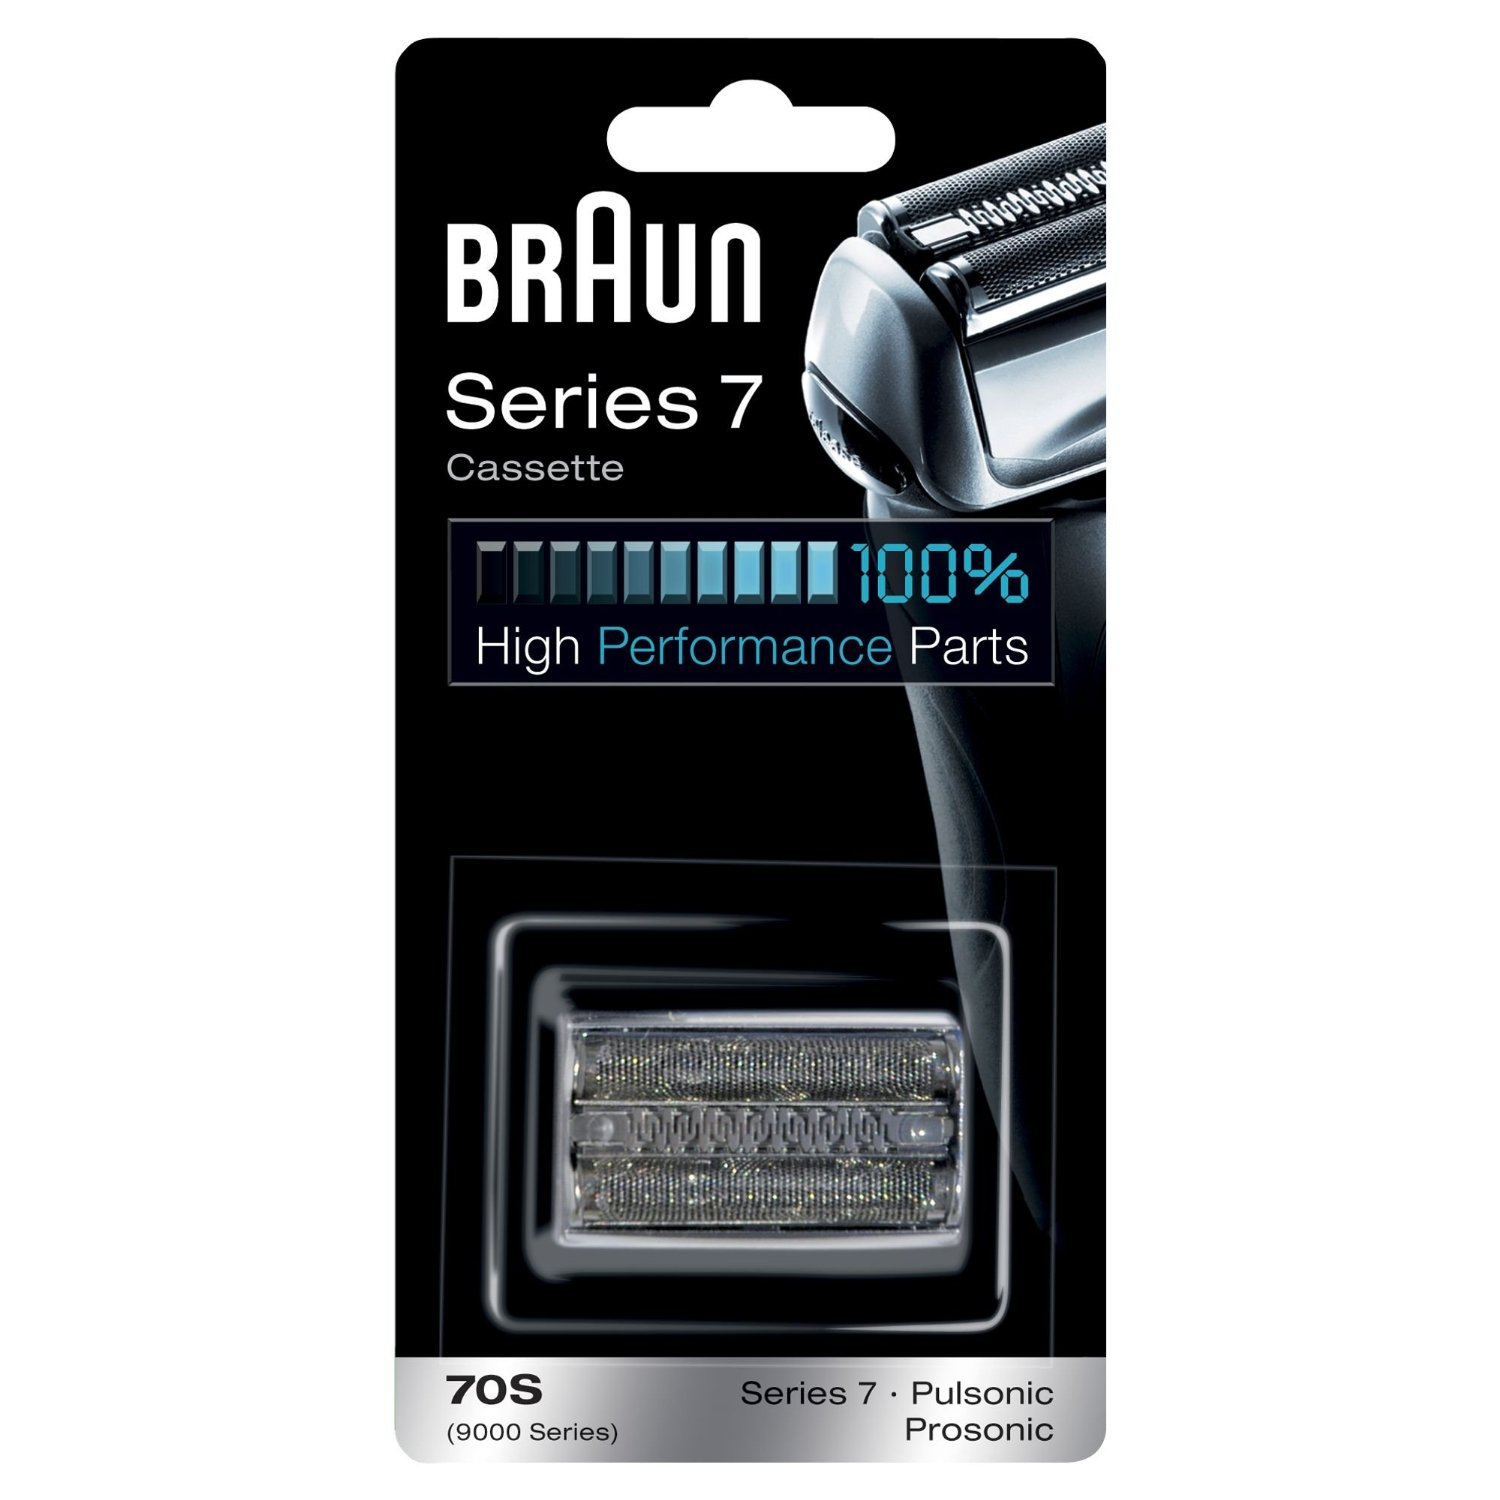 Braun 70S Razor Cassette Replacement for Series 7 Shavers 720 760cc 790cc 9595 9781